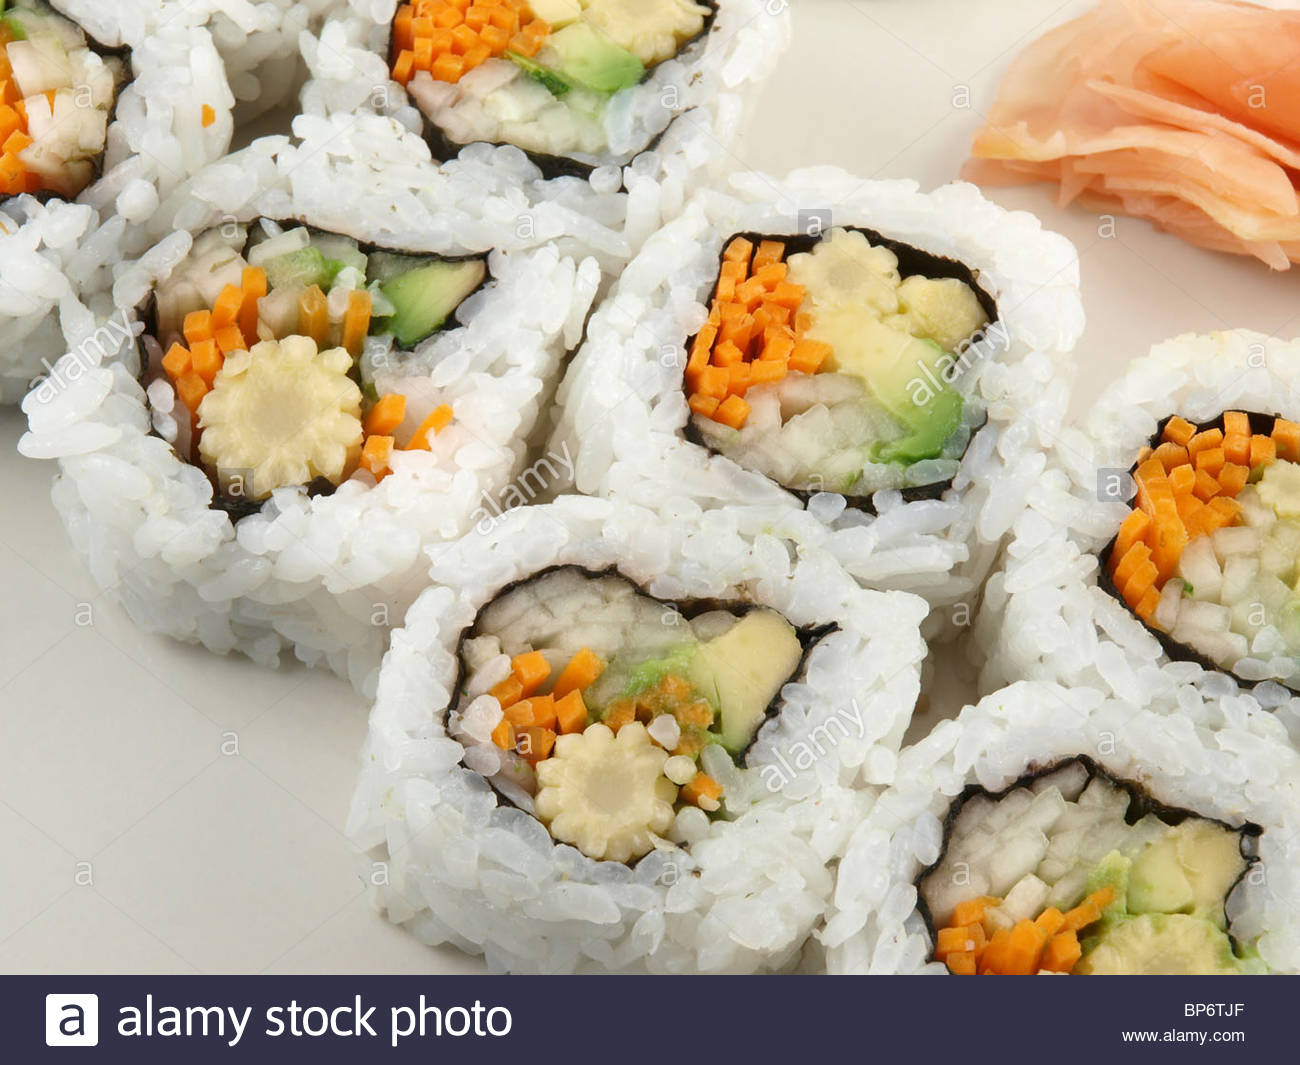 A tasty plate of Vegetarian Sushi with Ginger. - Stock Image